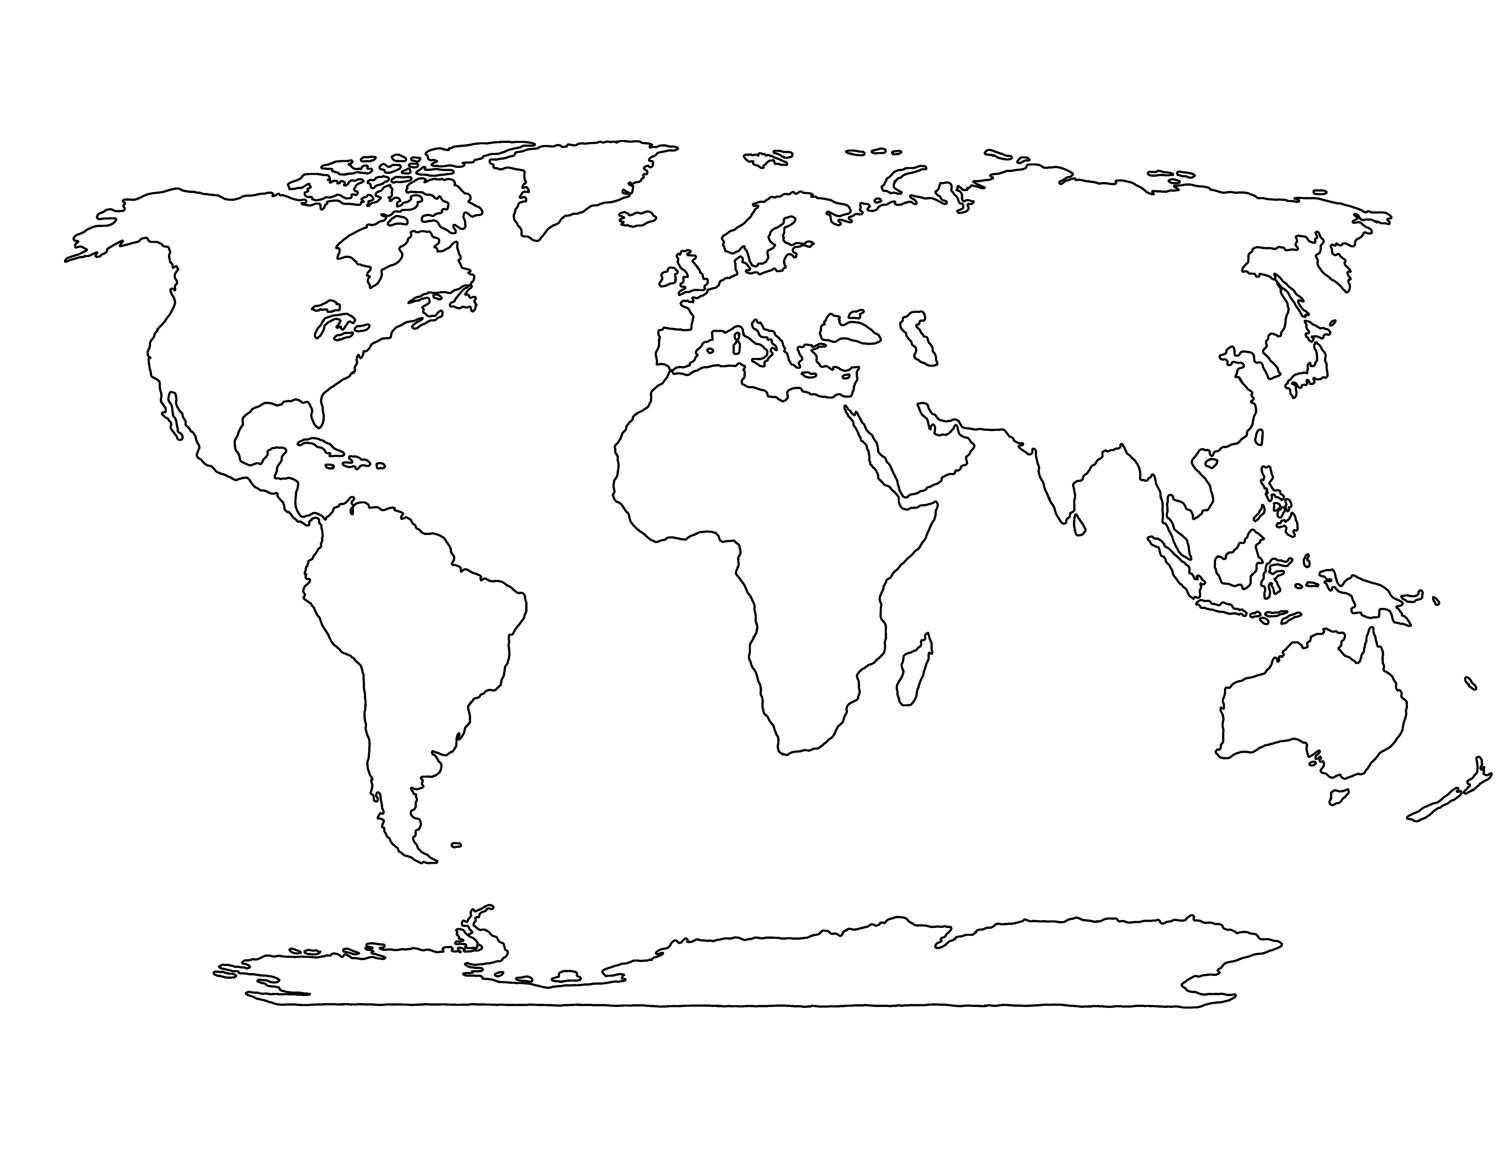 Printable Blank World Map Template For Students And Kids Carte